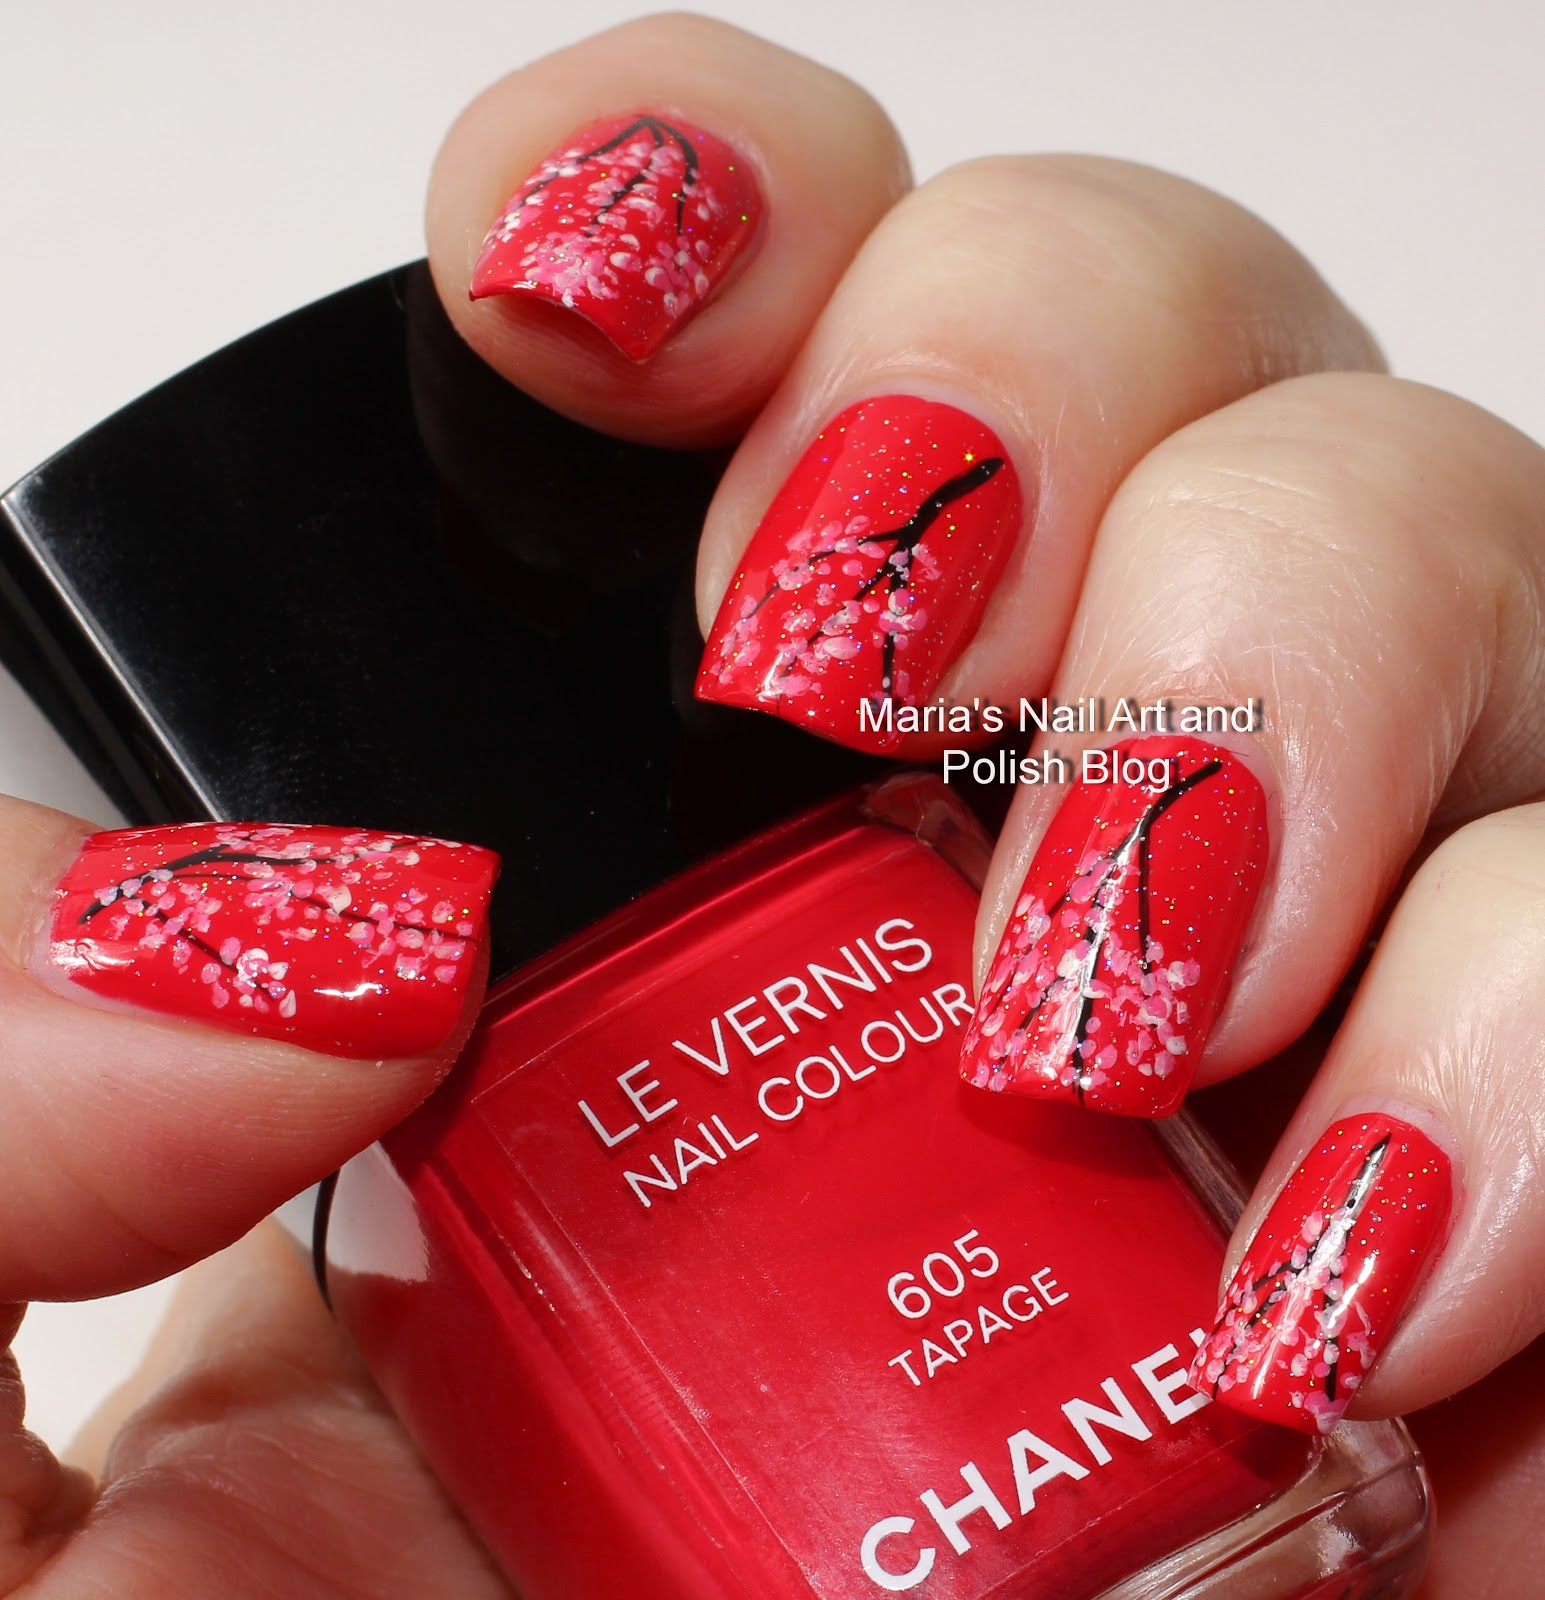 Marias Nail Art And Polish Blog Flushed With Stripes And: Marias Nail Art And Polish Blog: Tapage Cherry Blossom